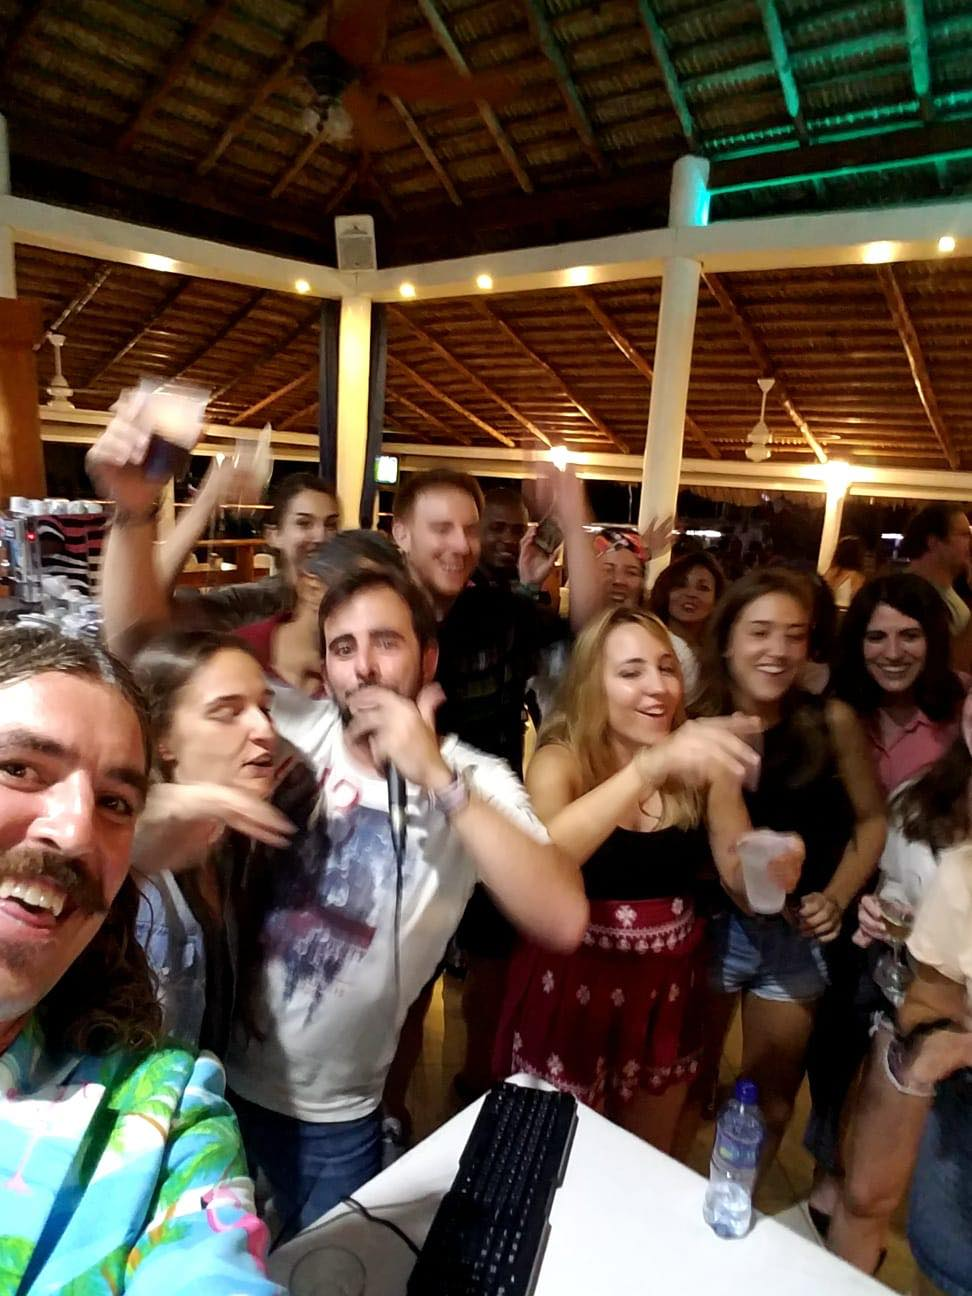 Liveaboard Life Day 162 to 163: Motorbike Trip + Saturday Karaoke night with Sailing friends!